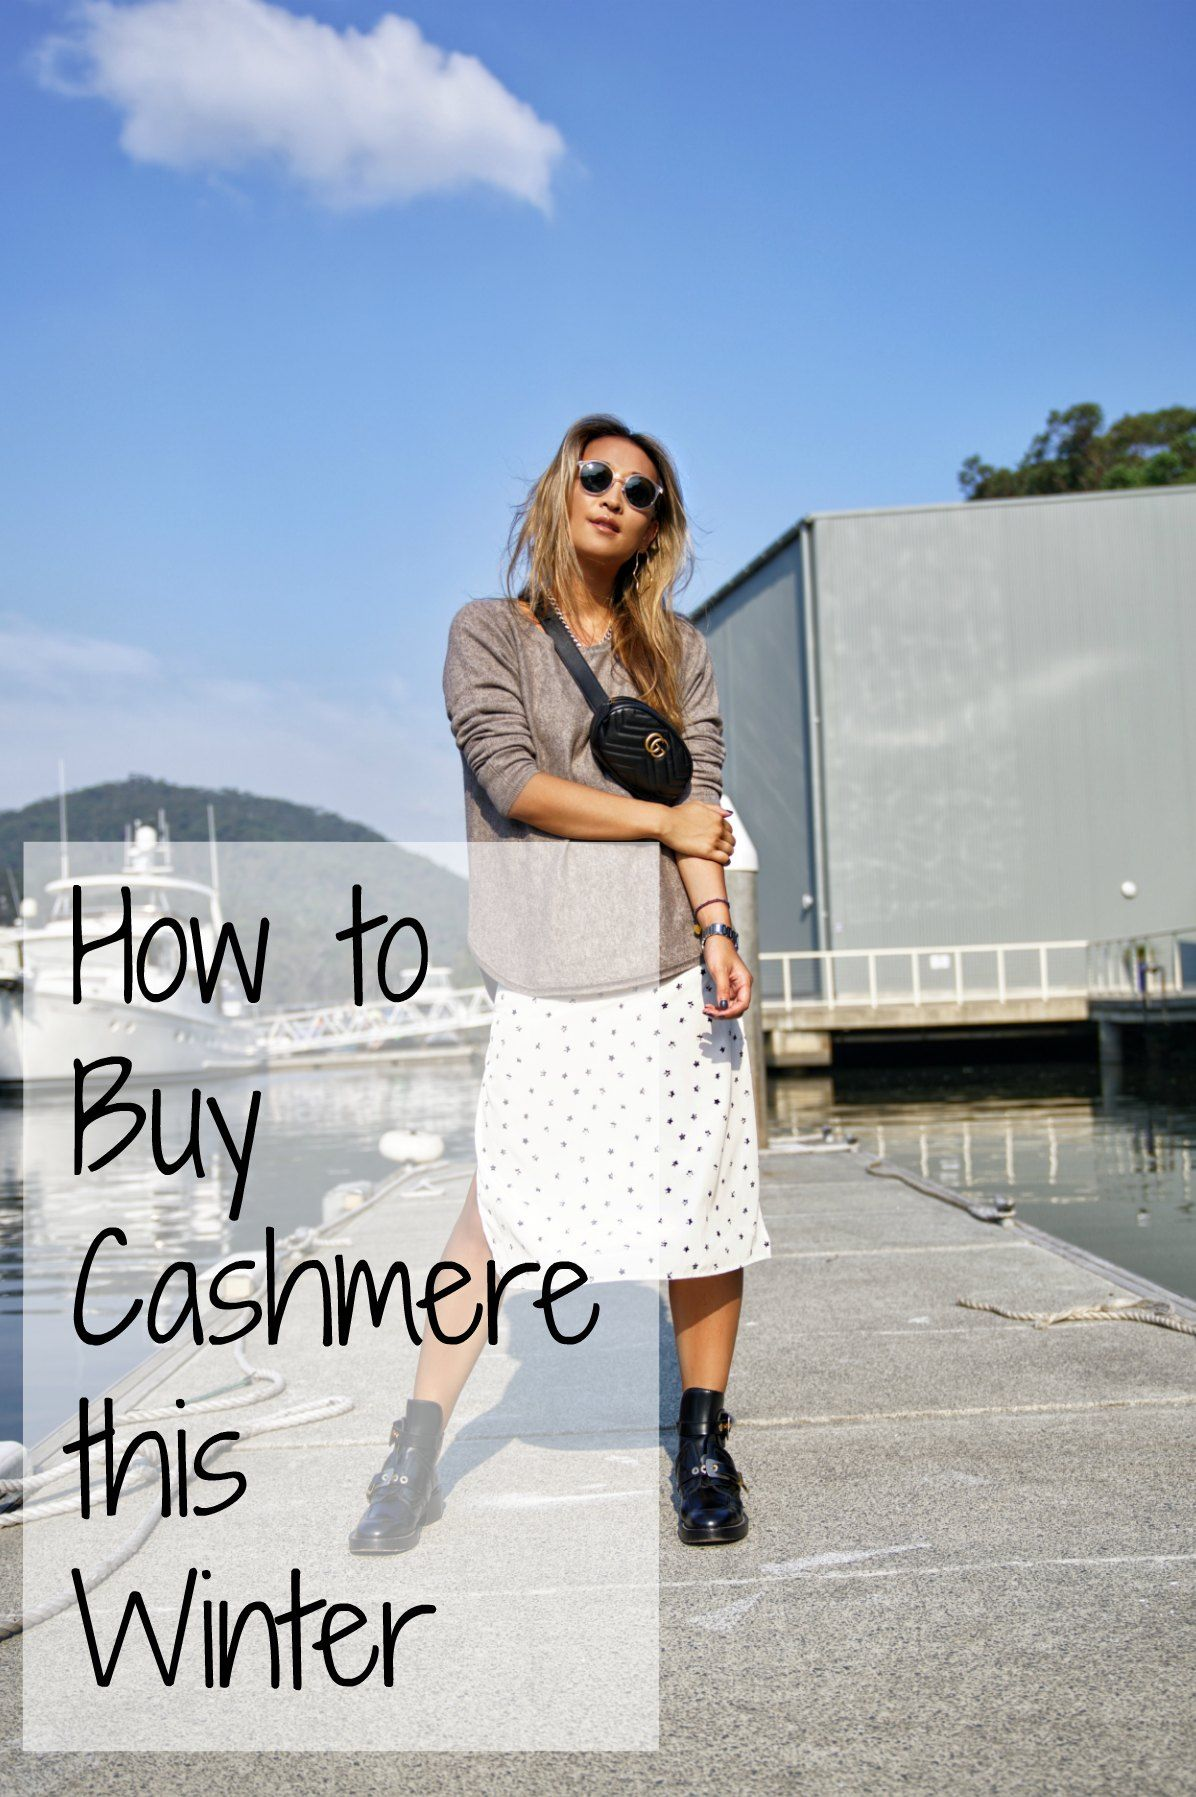 How to buy Cashmere this winter